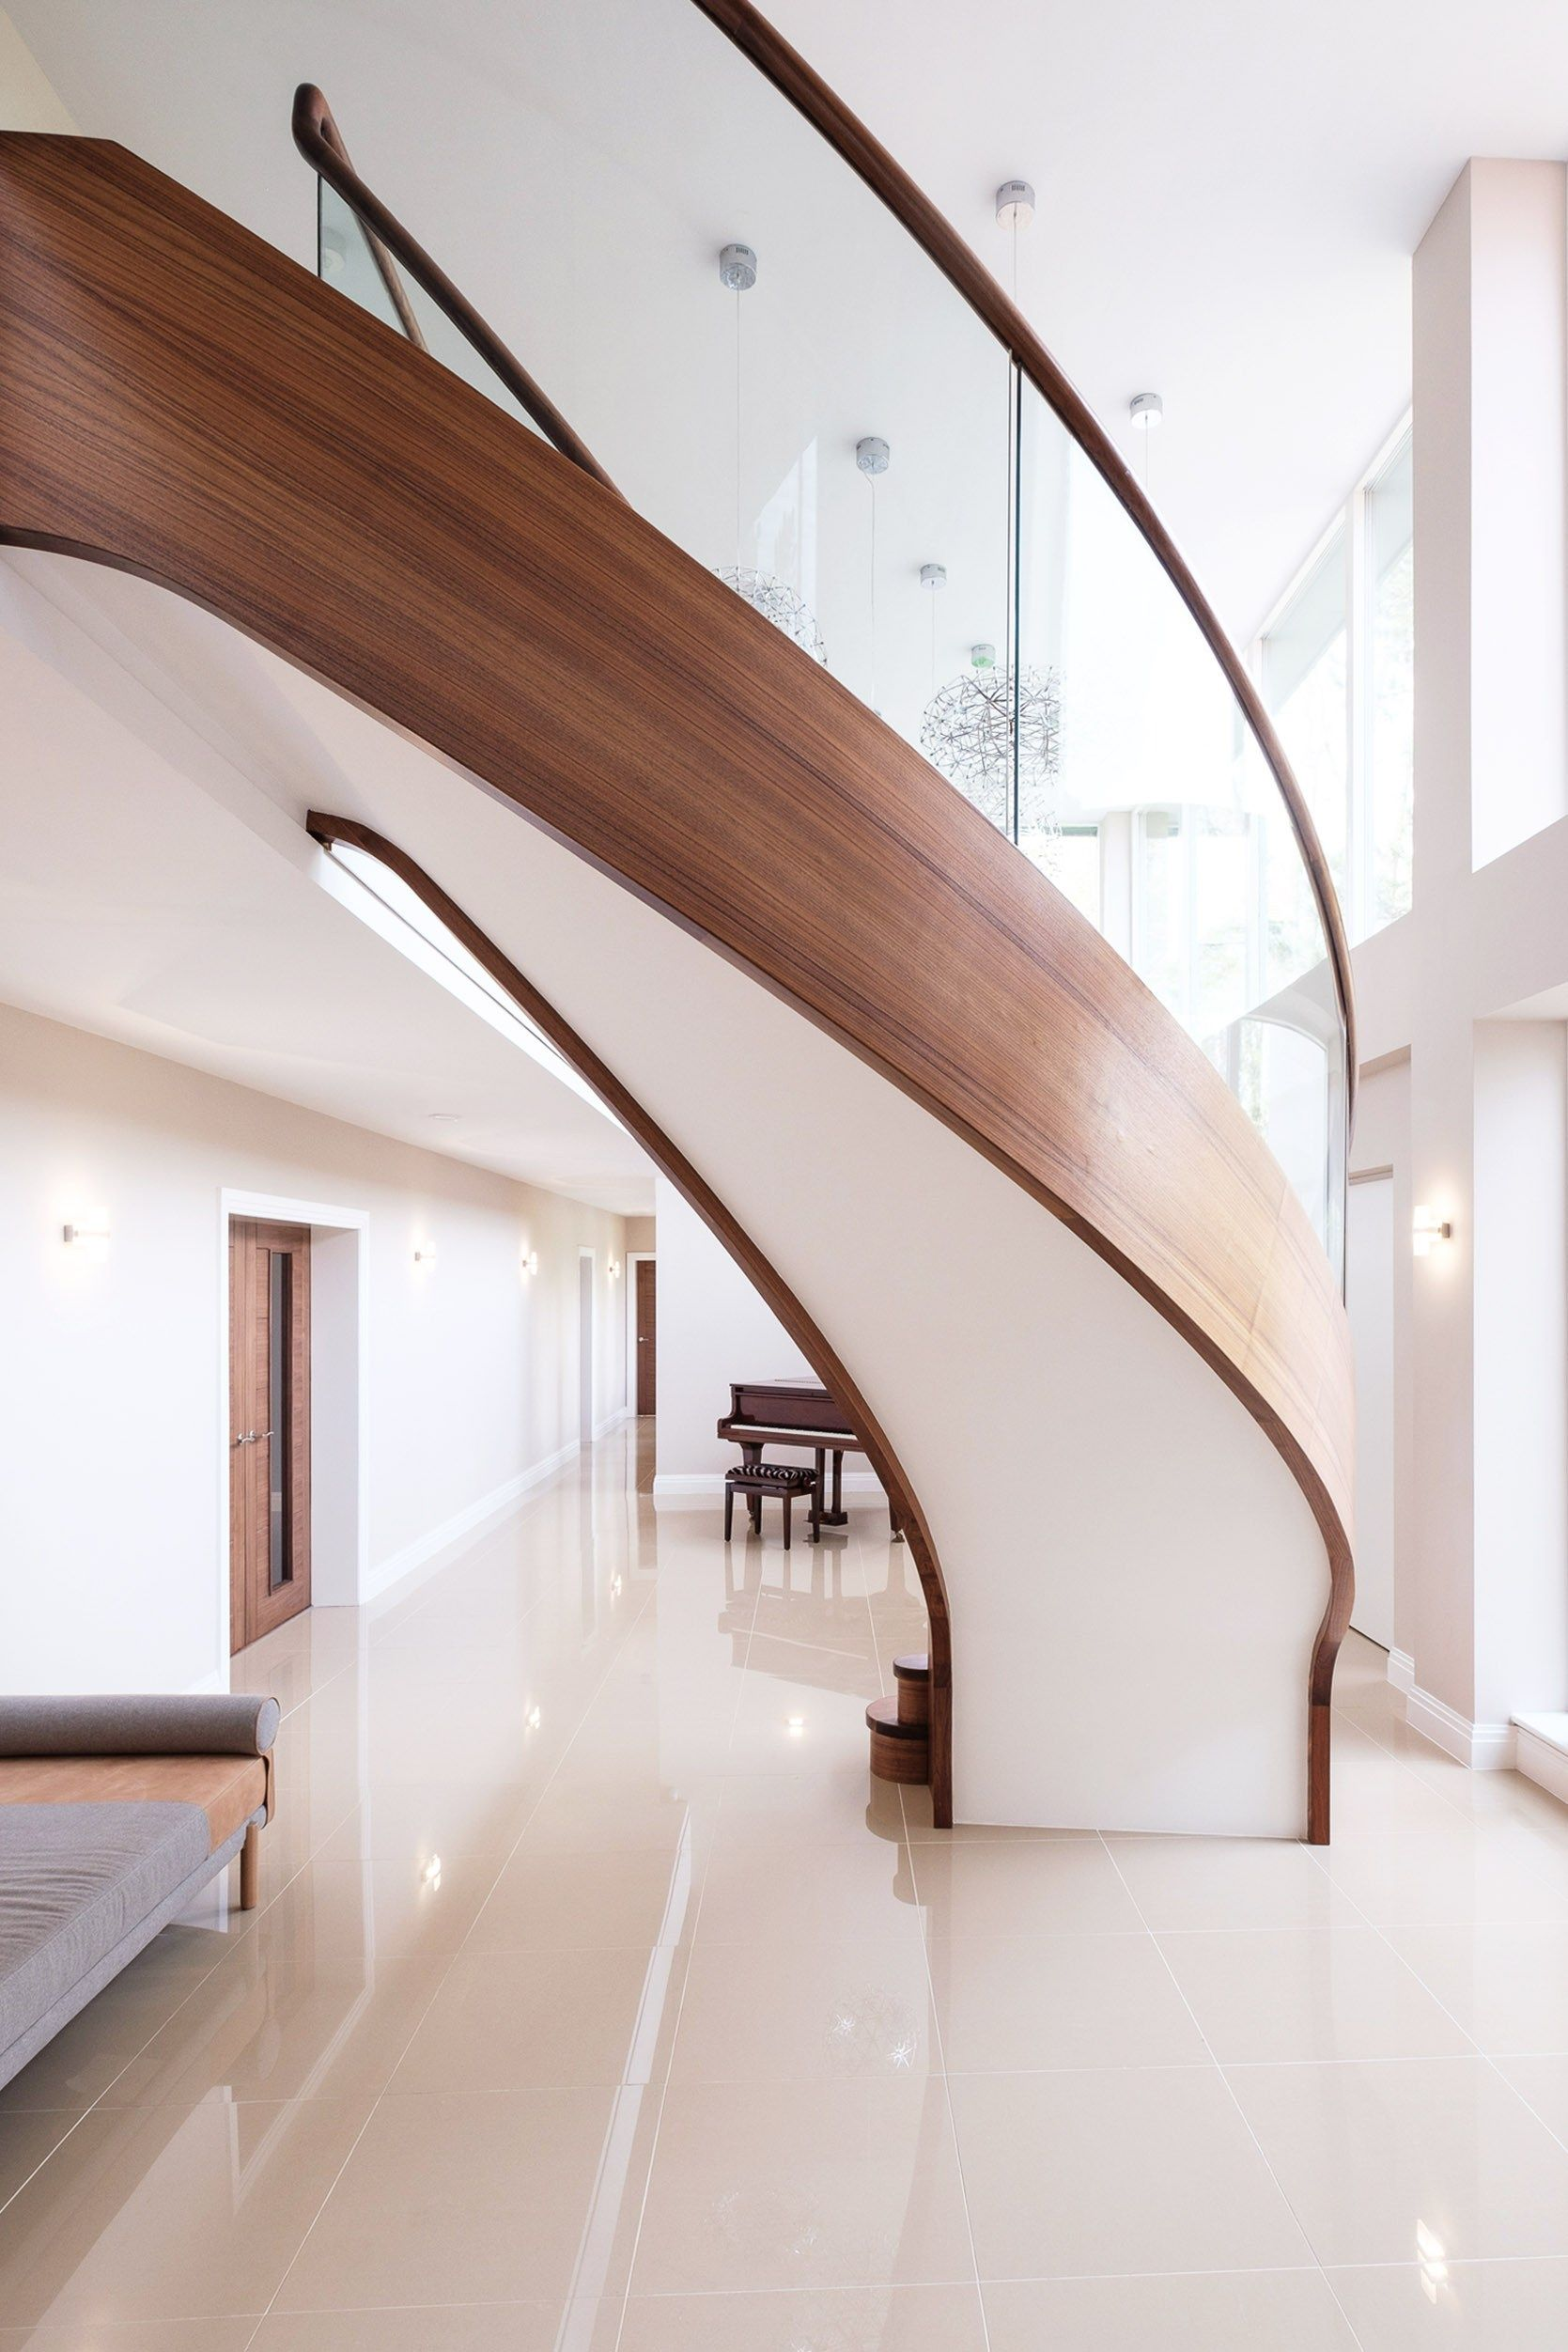 Underside of view of sweeping curved walnut stair with curved glass in large home with baby grand piano.